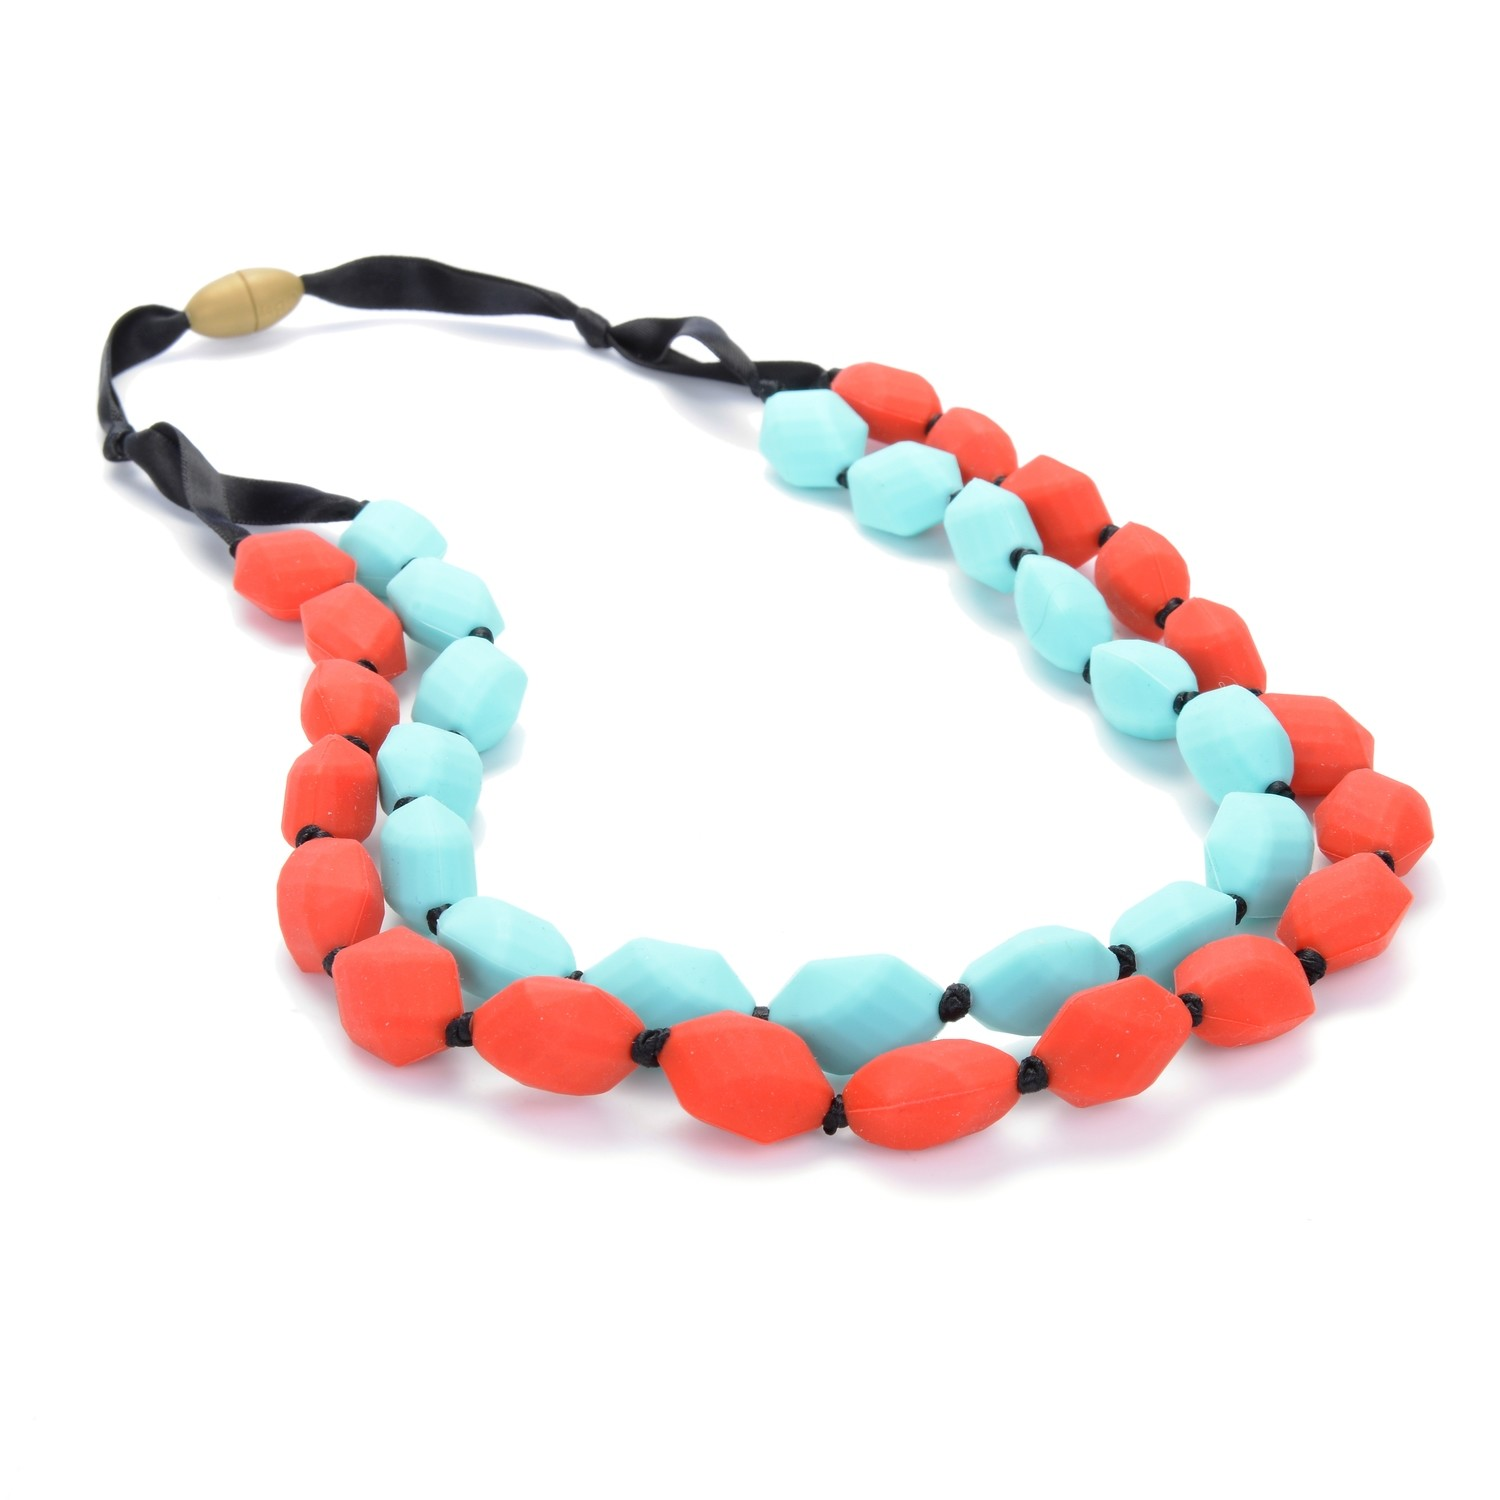 Astor Necklace - Cherry Red